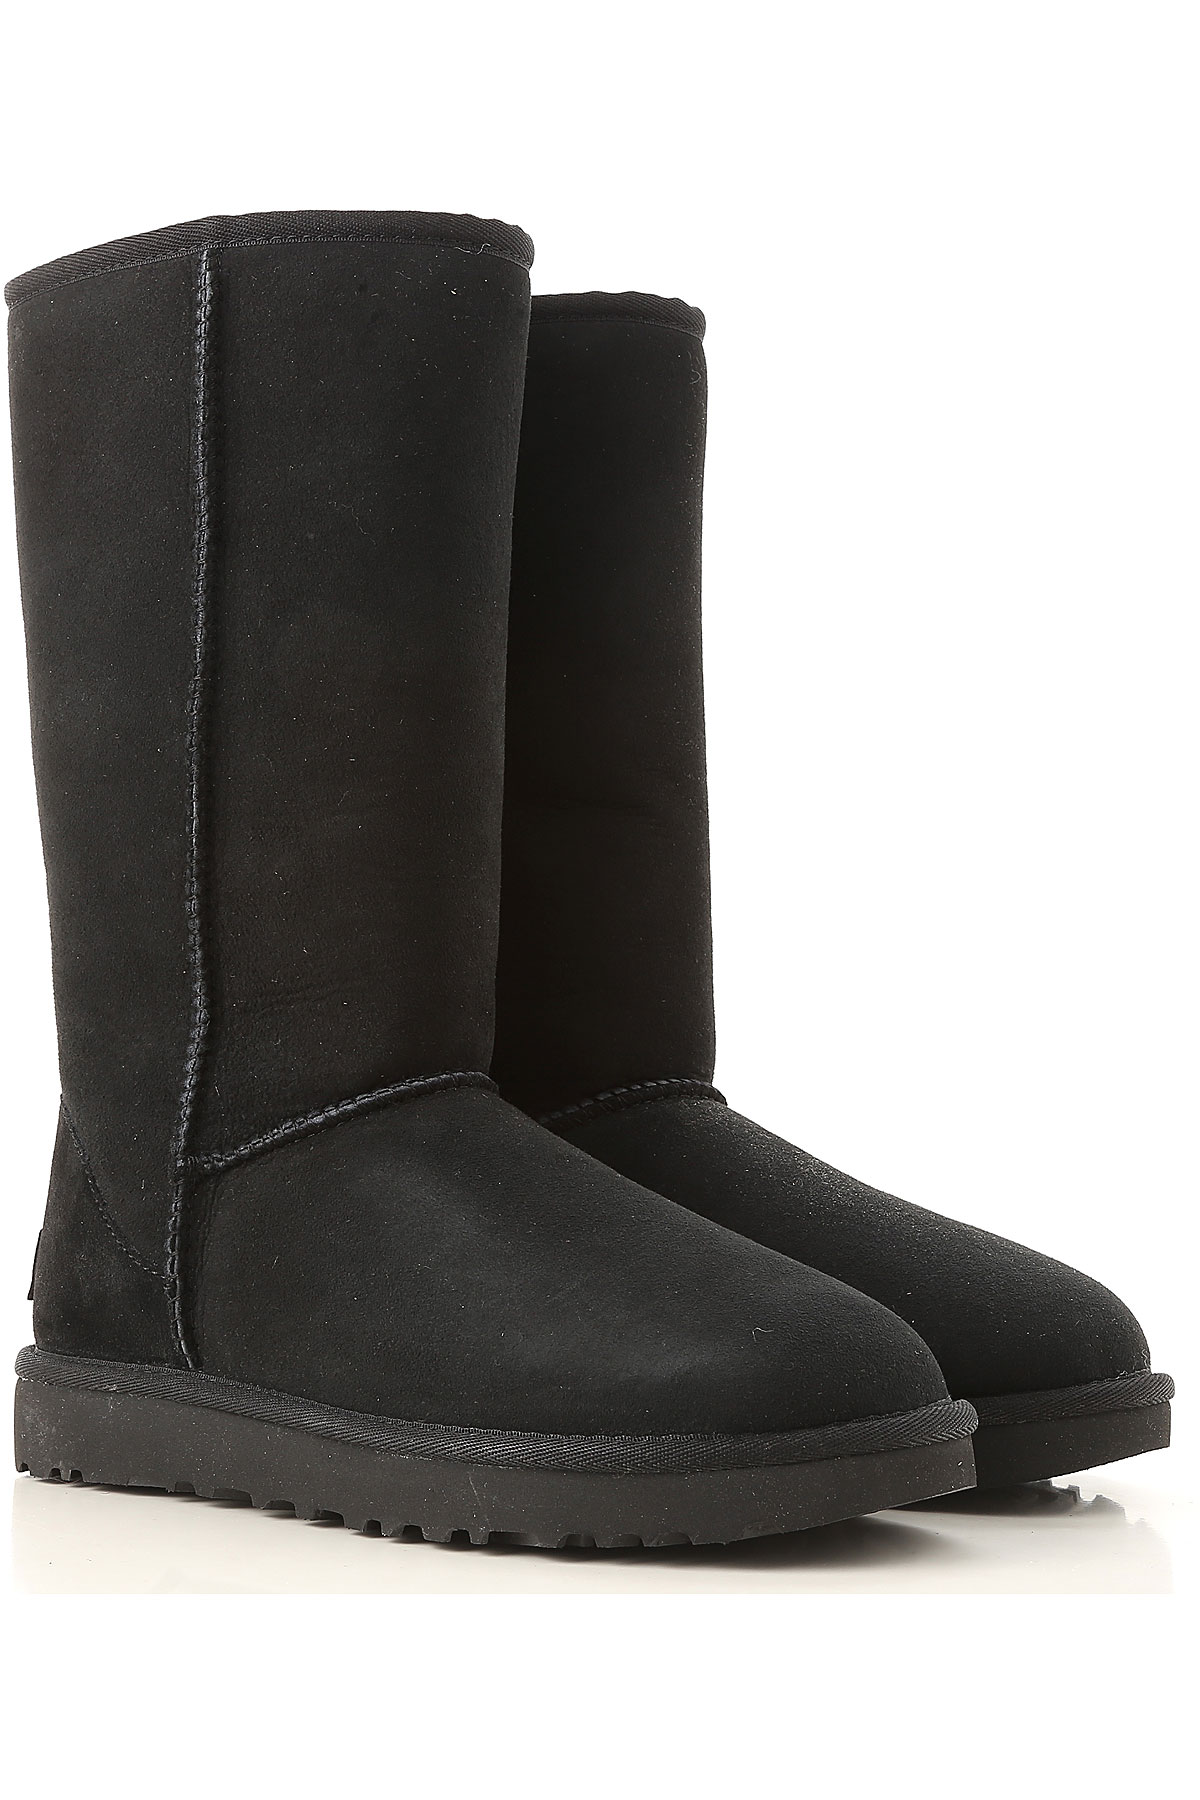 Image of UGG Boots for Women, Booties, Black, suede, 2017, USA 5 UK 3 5 EU 36 JAPAN 220 USA 6 UK 4 5 EU 37 JAPAN 230 USA 7 UK 5 5 EU 38 JAPAN 240 USA 8 UK 6 5 EU 39 JAPAN 250 USA 9 UK 7 5 EU 40 JAPAN 260